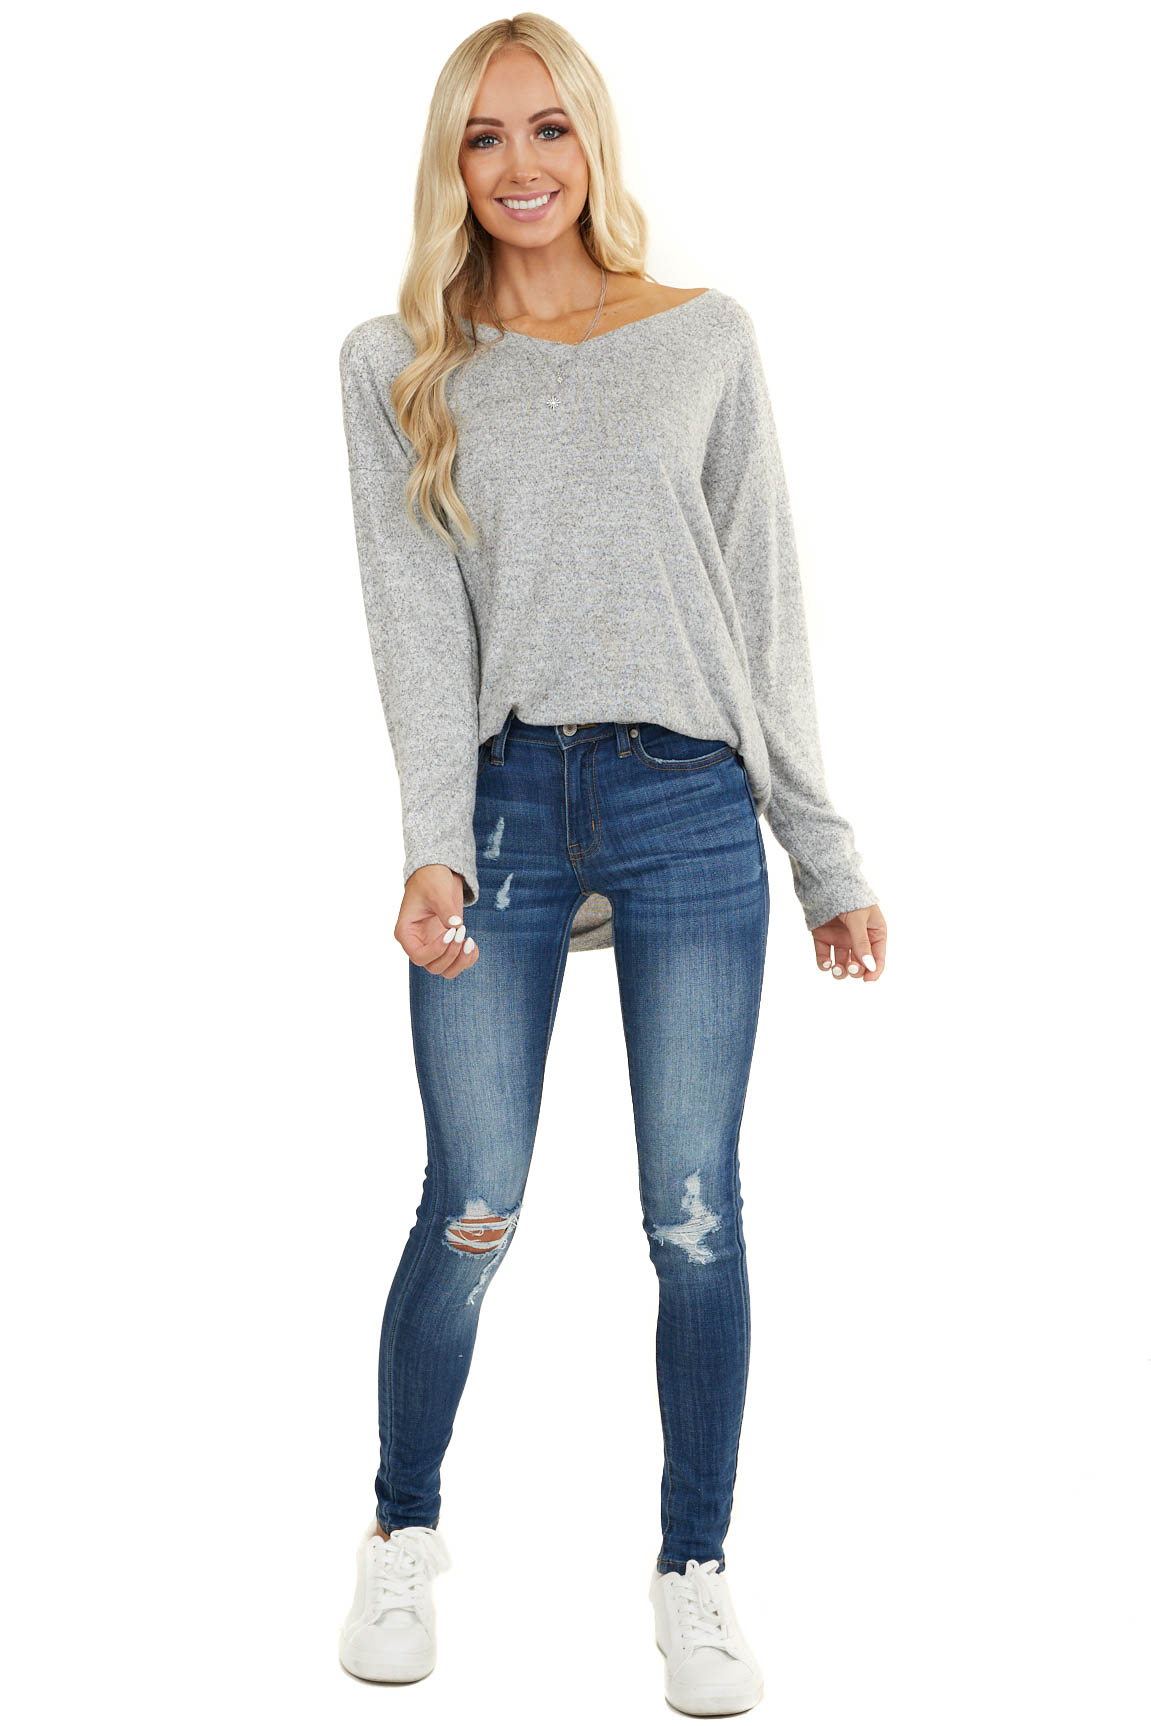 Heather Grey Long Sleeve Top with Back Criss Cross Detail